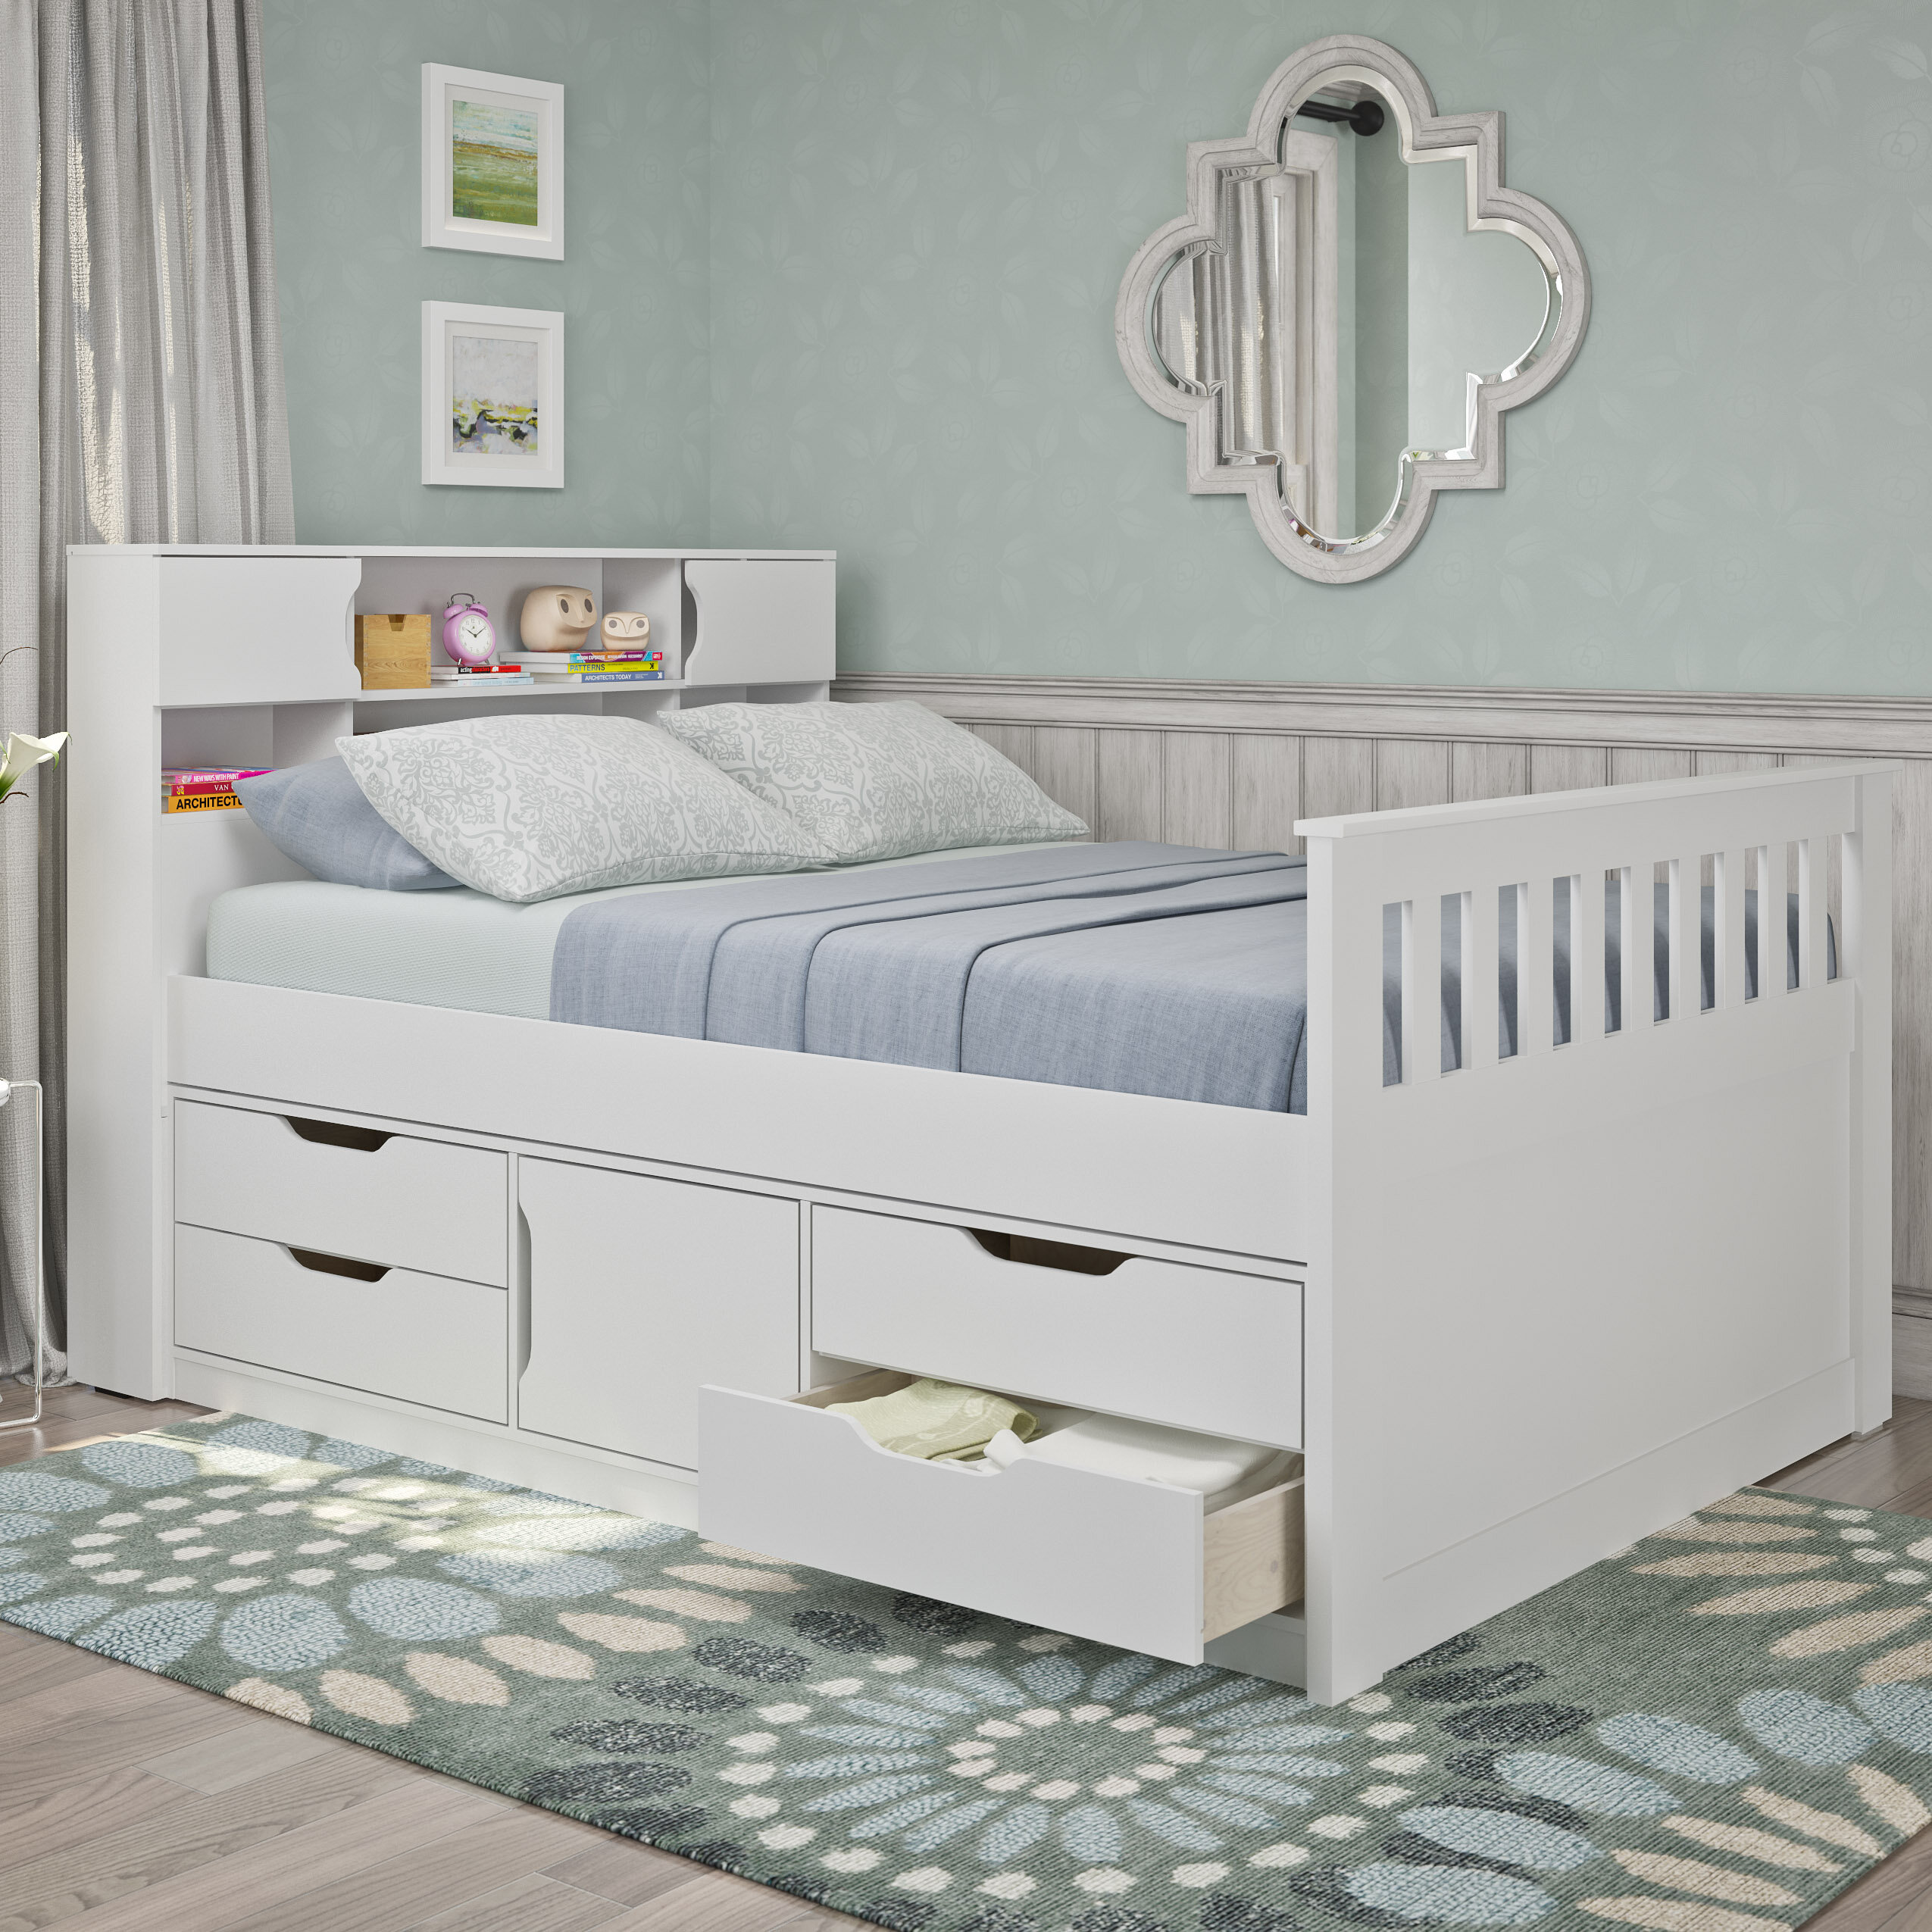 Double Storage Platform Bed